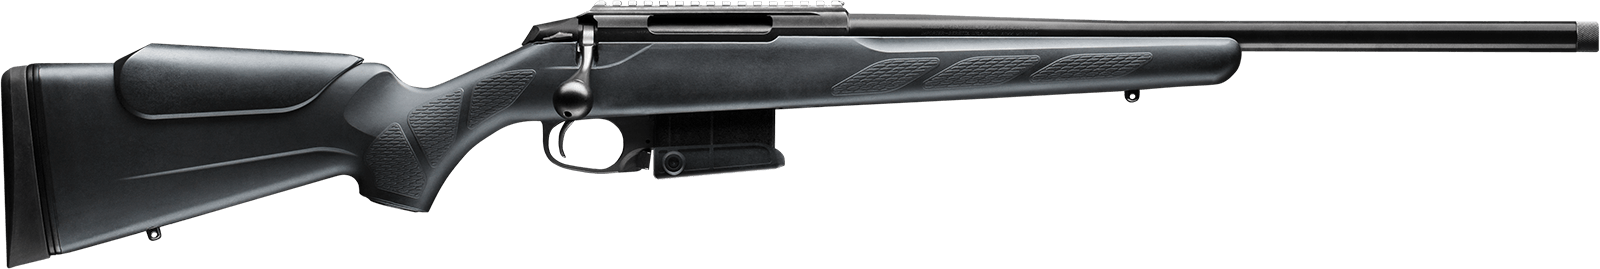 Tikka T3 COMPACT TACTICAL RIFLE